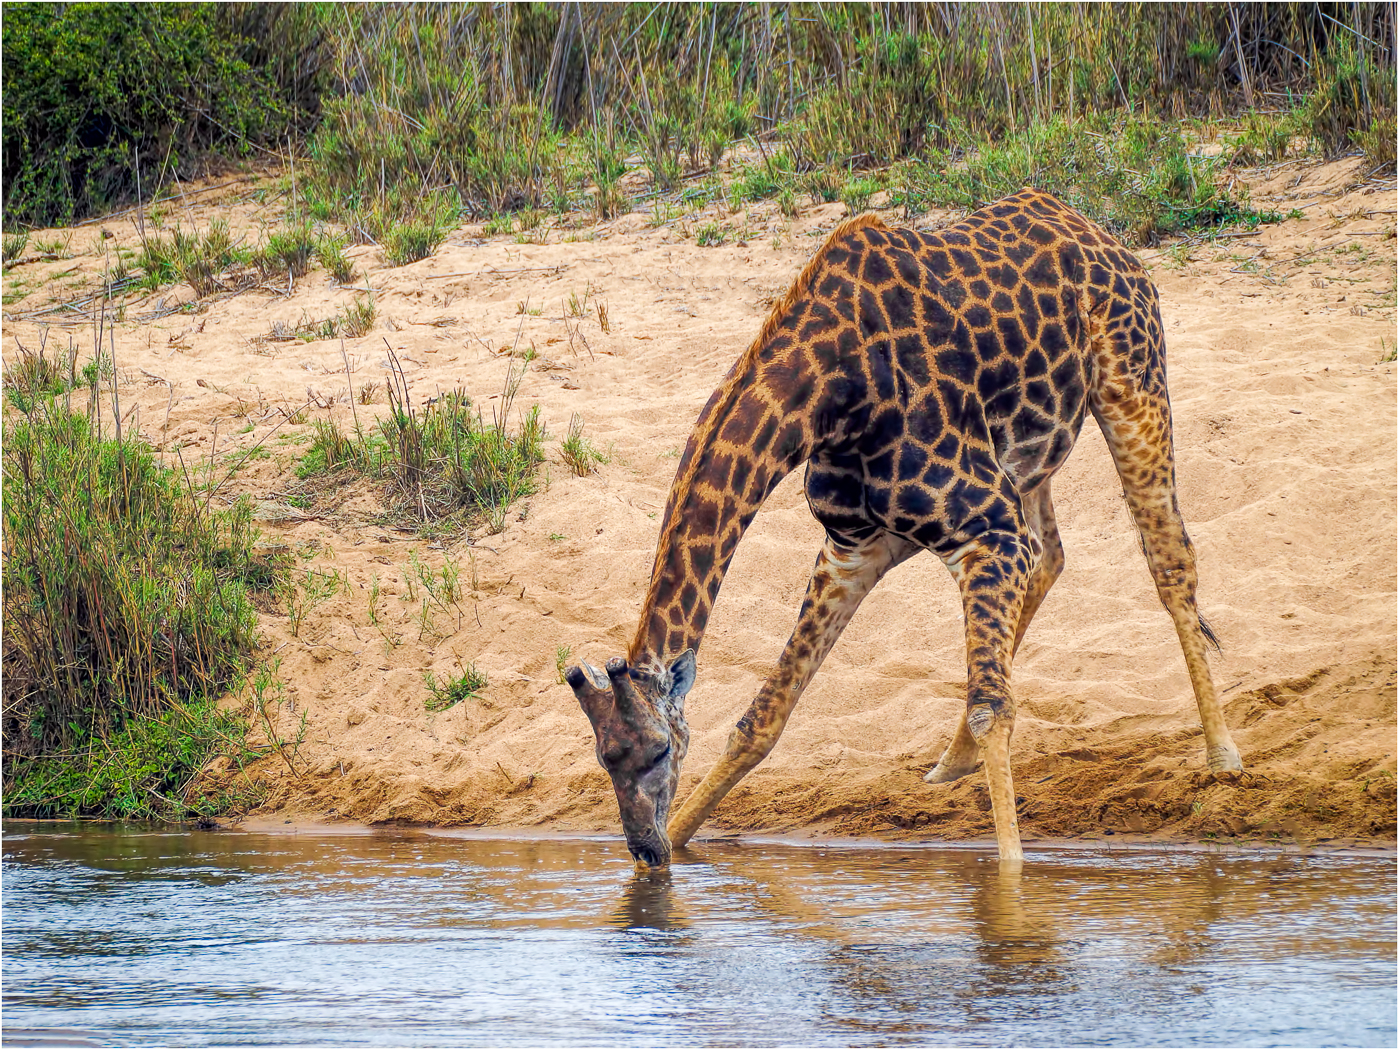 BABY GIRAFFE AT ITS MOST VULNERABLE by Mark Taylor